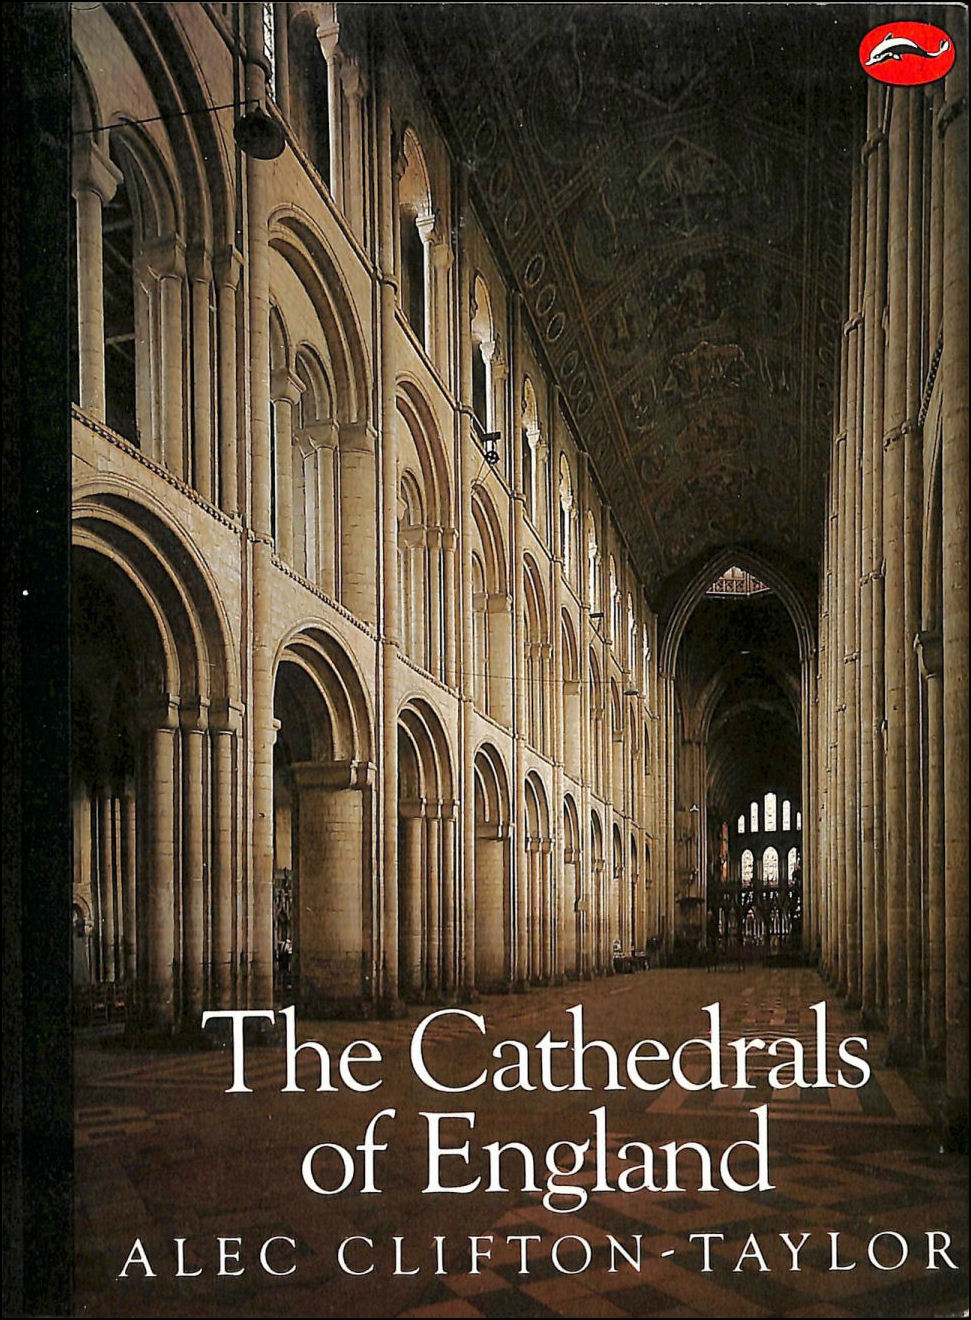 The Cathedrals of England (World of Art), Alec Clifton-Taylor